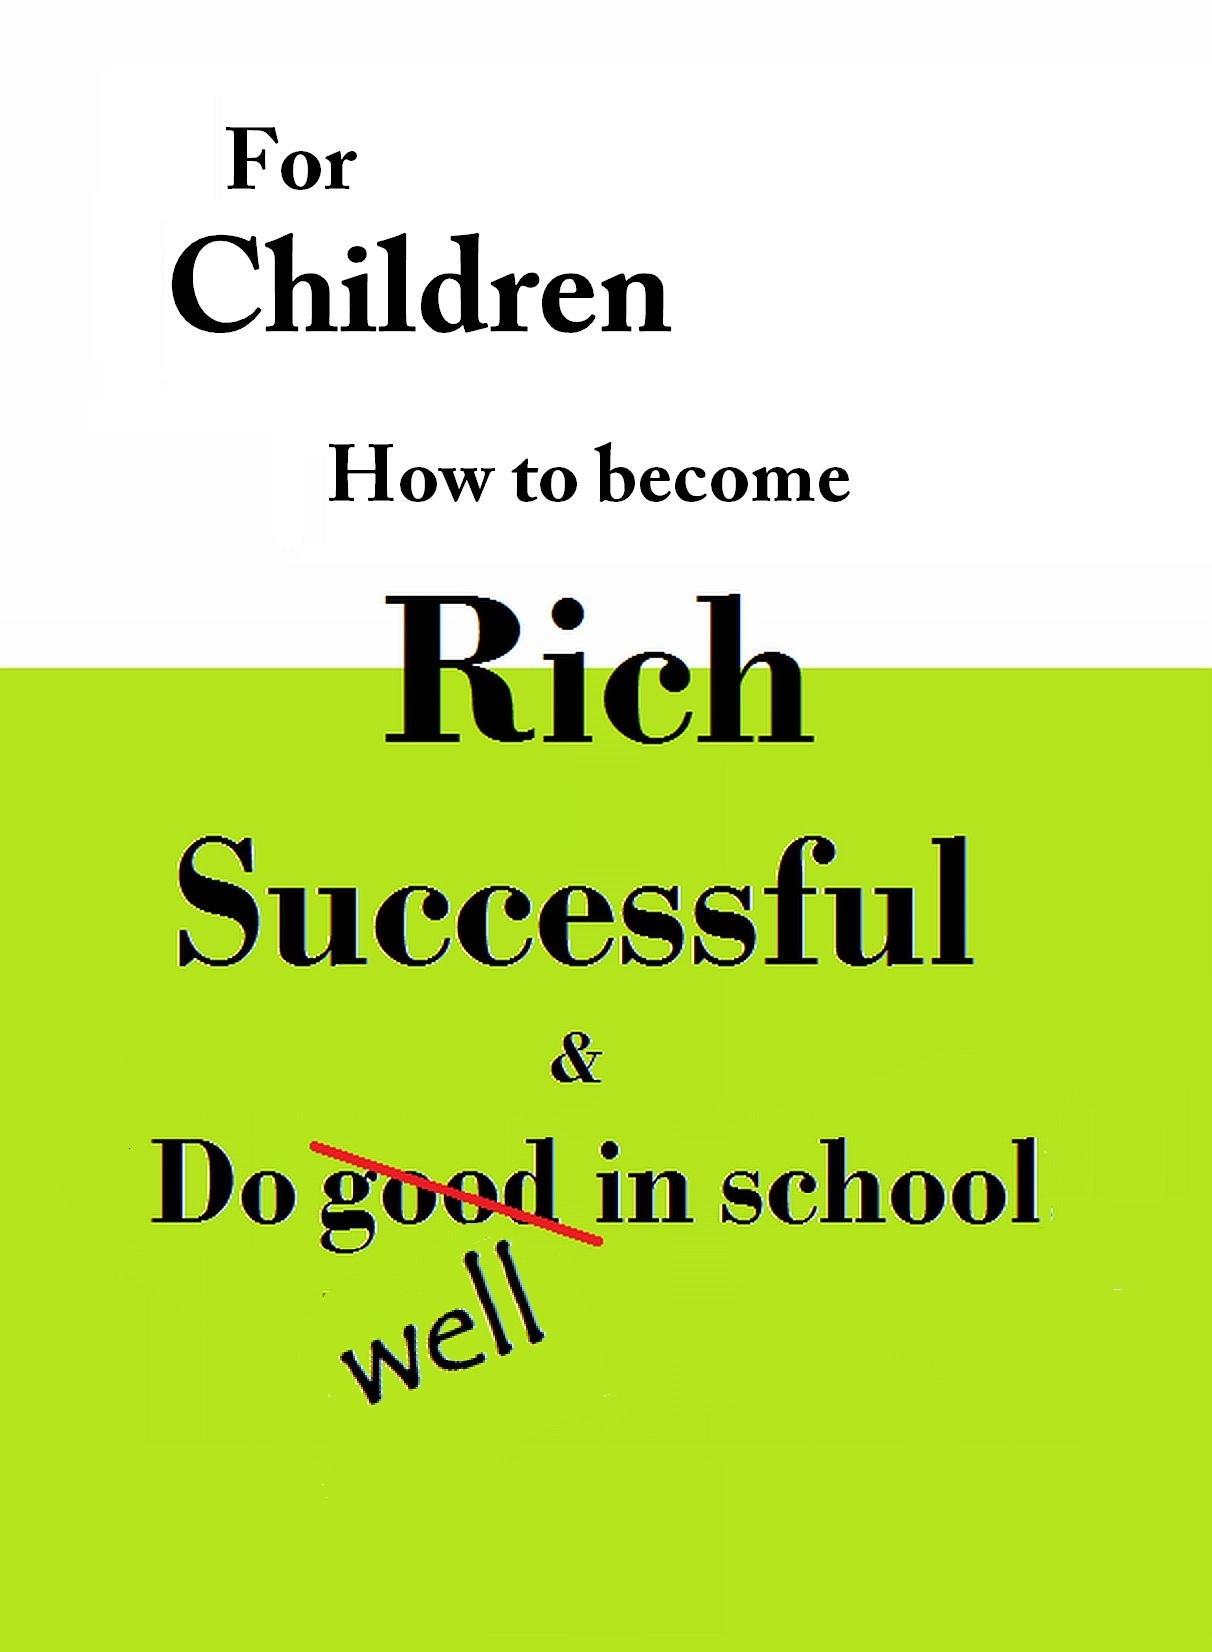 for Children How to become RICH Success & do well in school